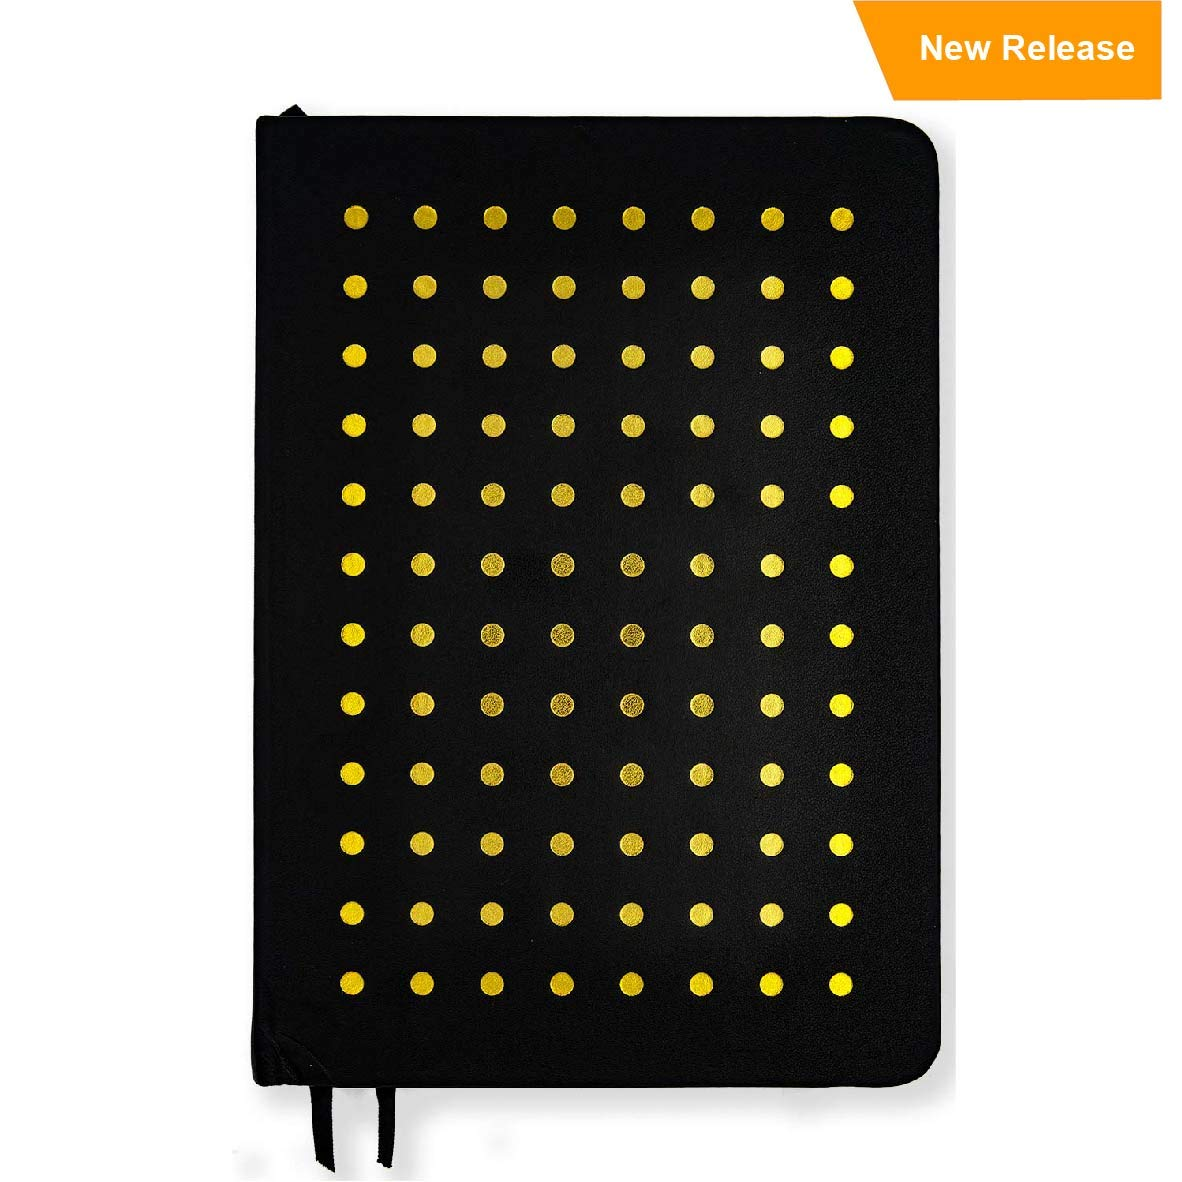 Dot Grid Notebook for Bullet Journaling - Hardcover 6'' x 8'' with Thick 100GSM Paper Perfect for Fountain Pens (Black)